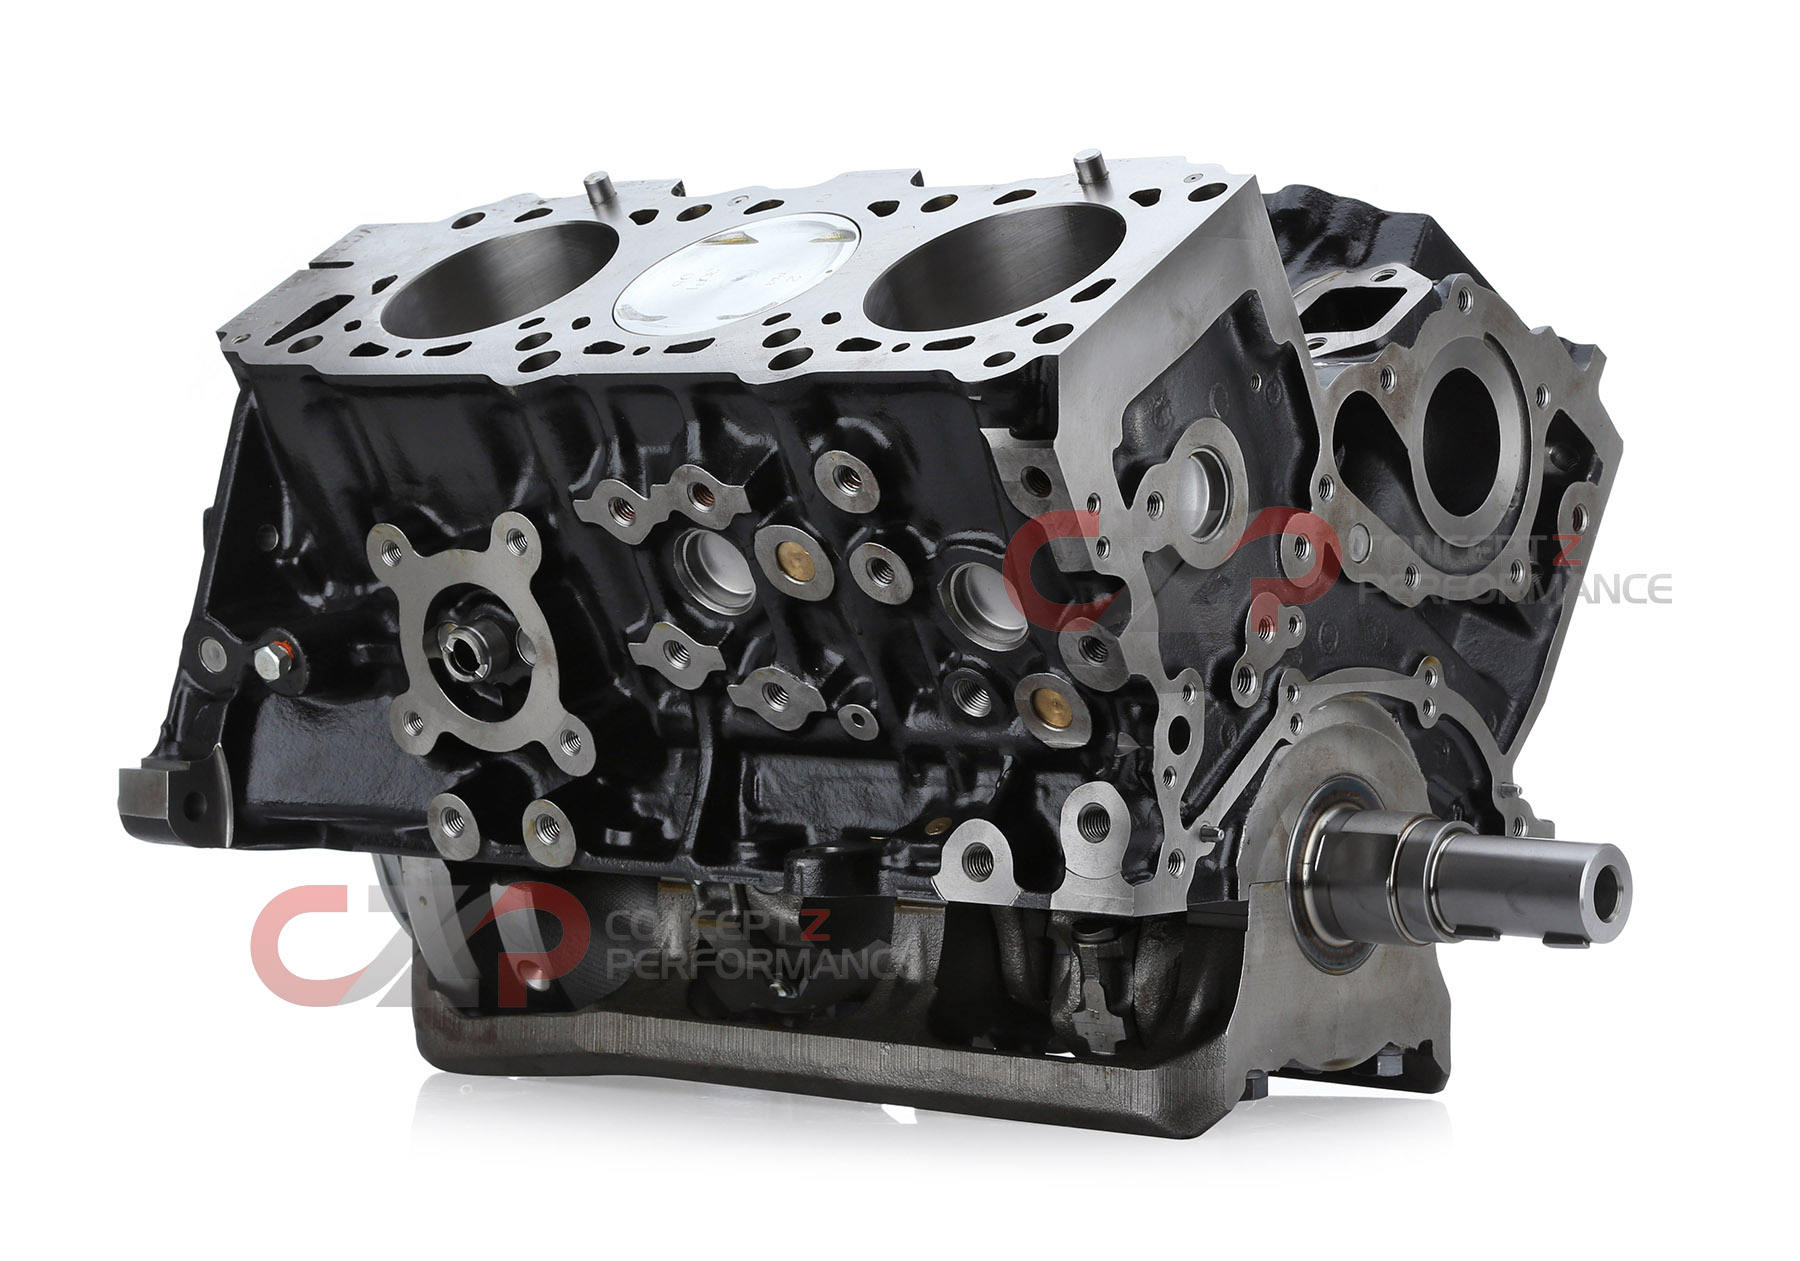 Nissan infiniti nissan oem 10103 40pc0 vg30dett engine short nissan oem 10103 40pc0 vg30dett engine short block twin turbo tt nissan 300zx 90 96 z32 vanachro Images